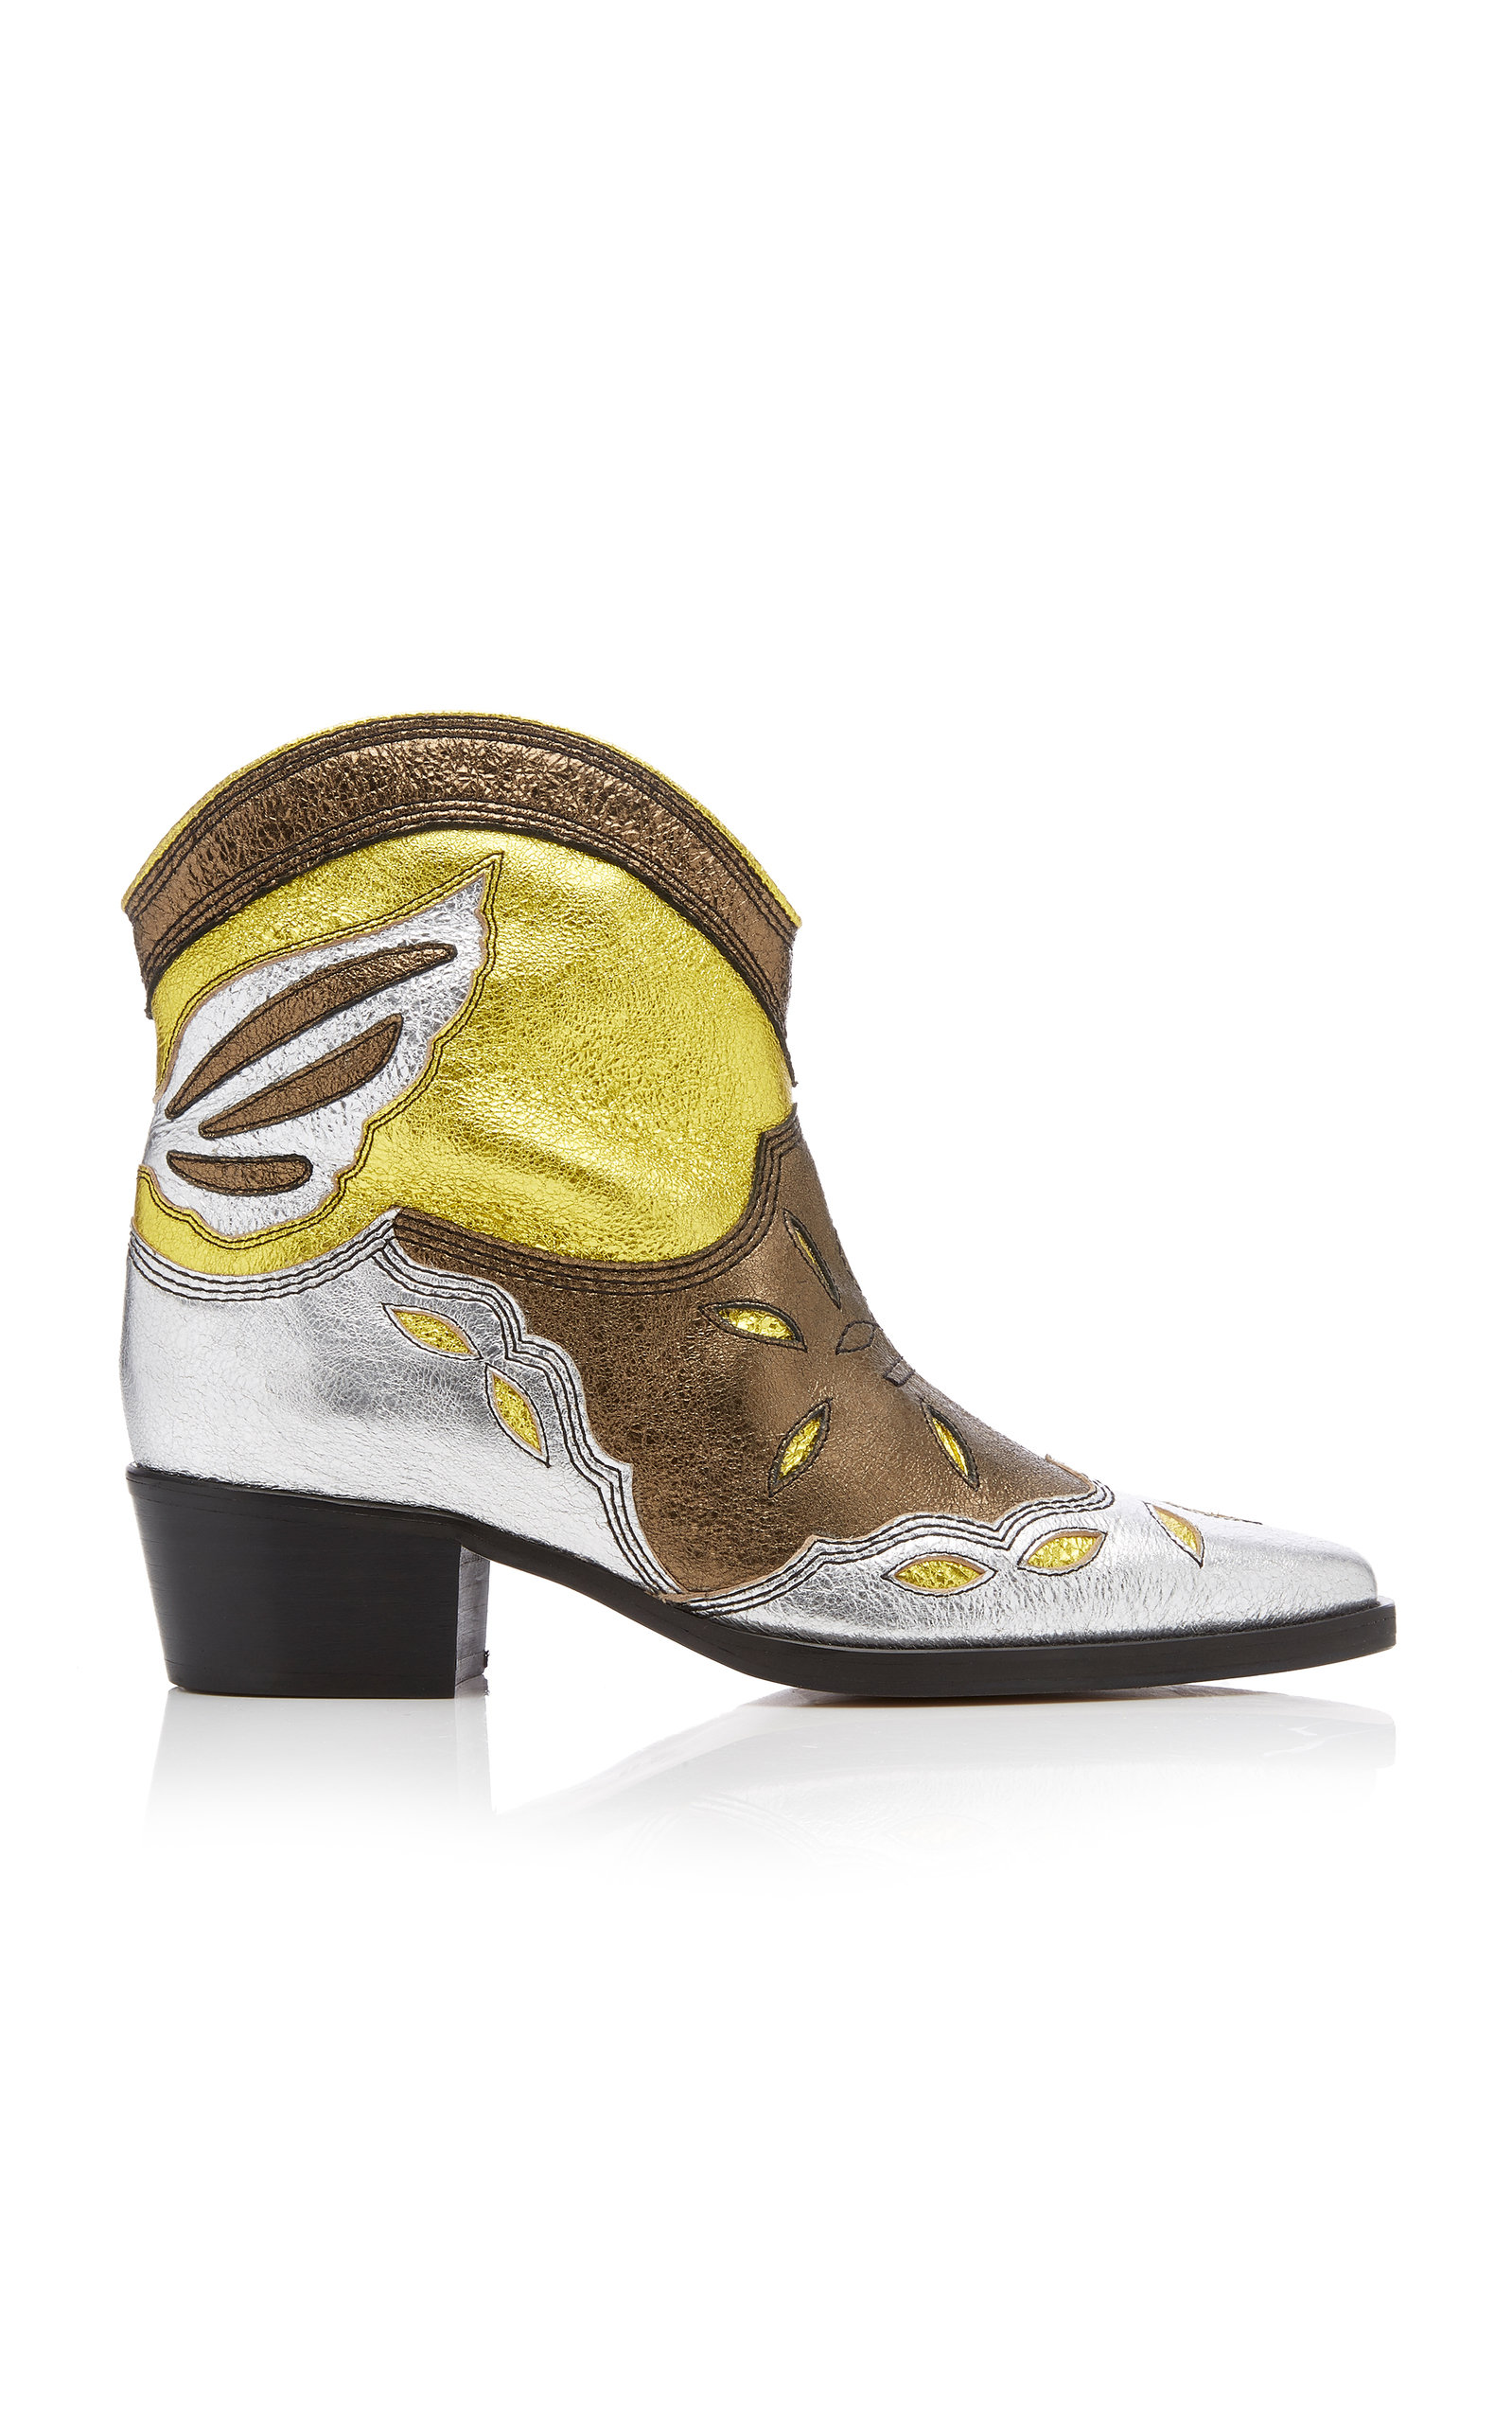 Ganni Boots METALLIC LEATHER ANKLE BOOTS